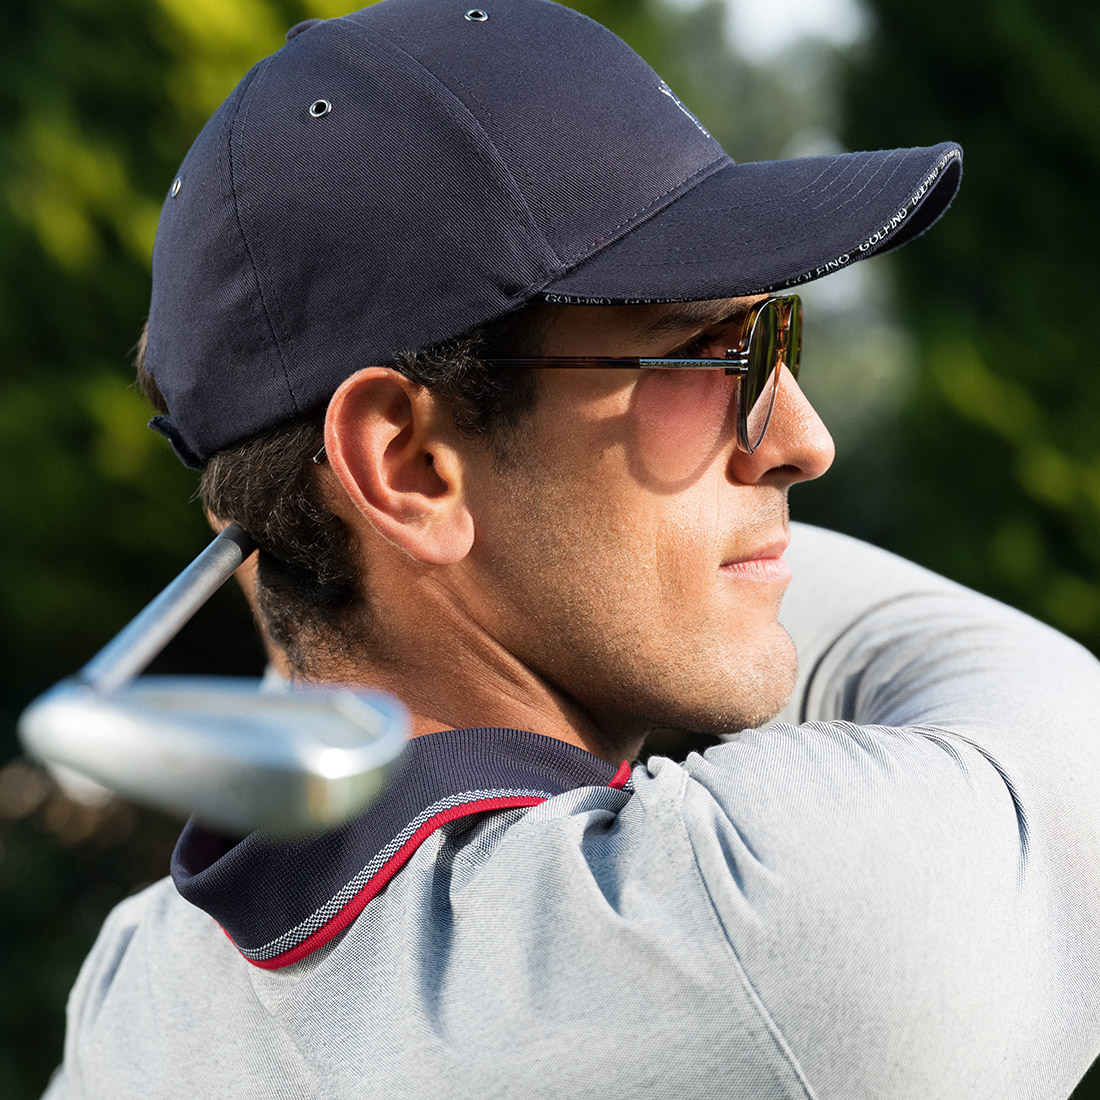 Atmungsaktives Herren Langarm Stretch-Golfpolo mit Sun Protection Funktion